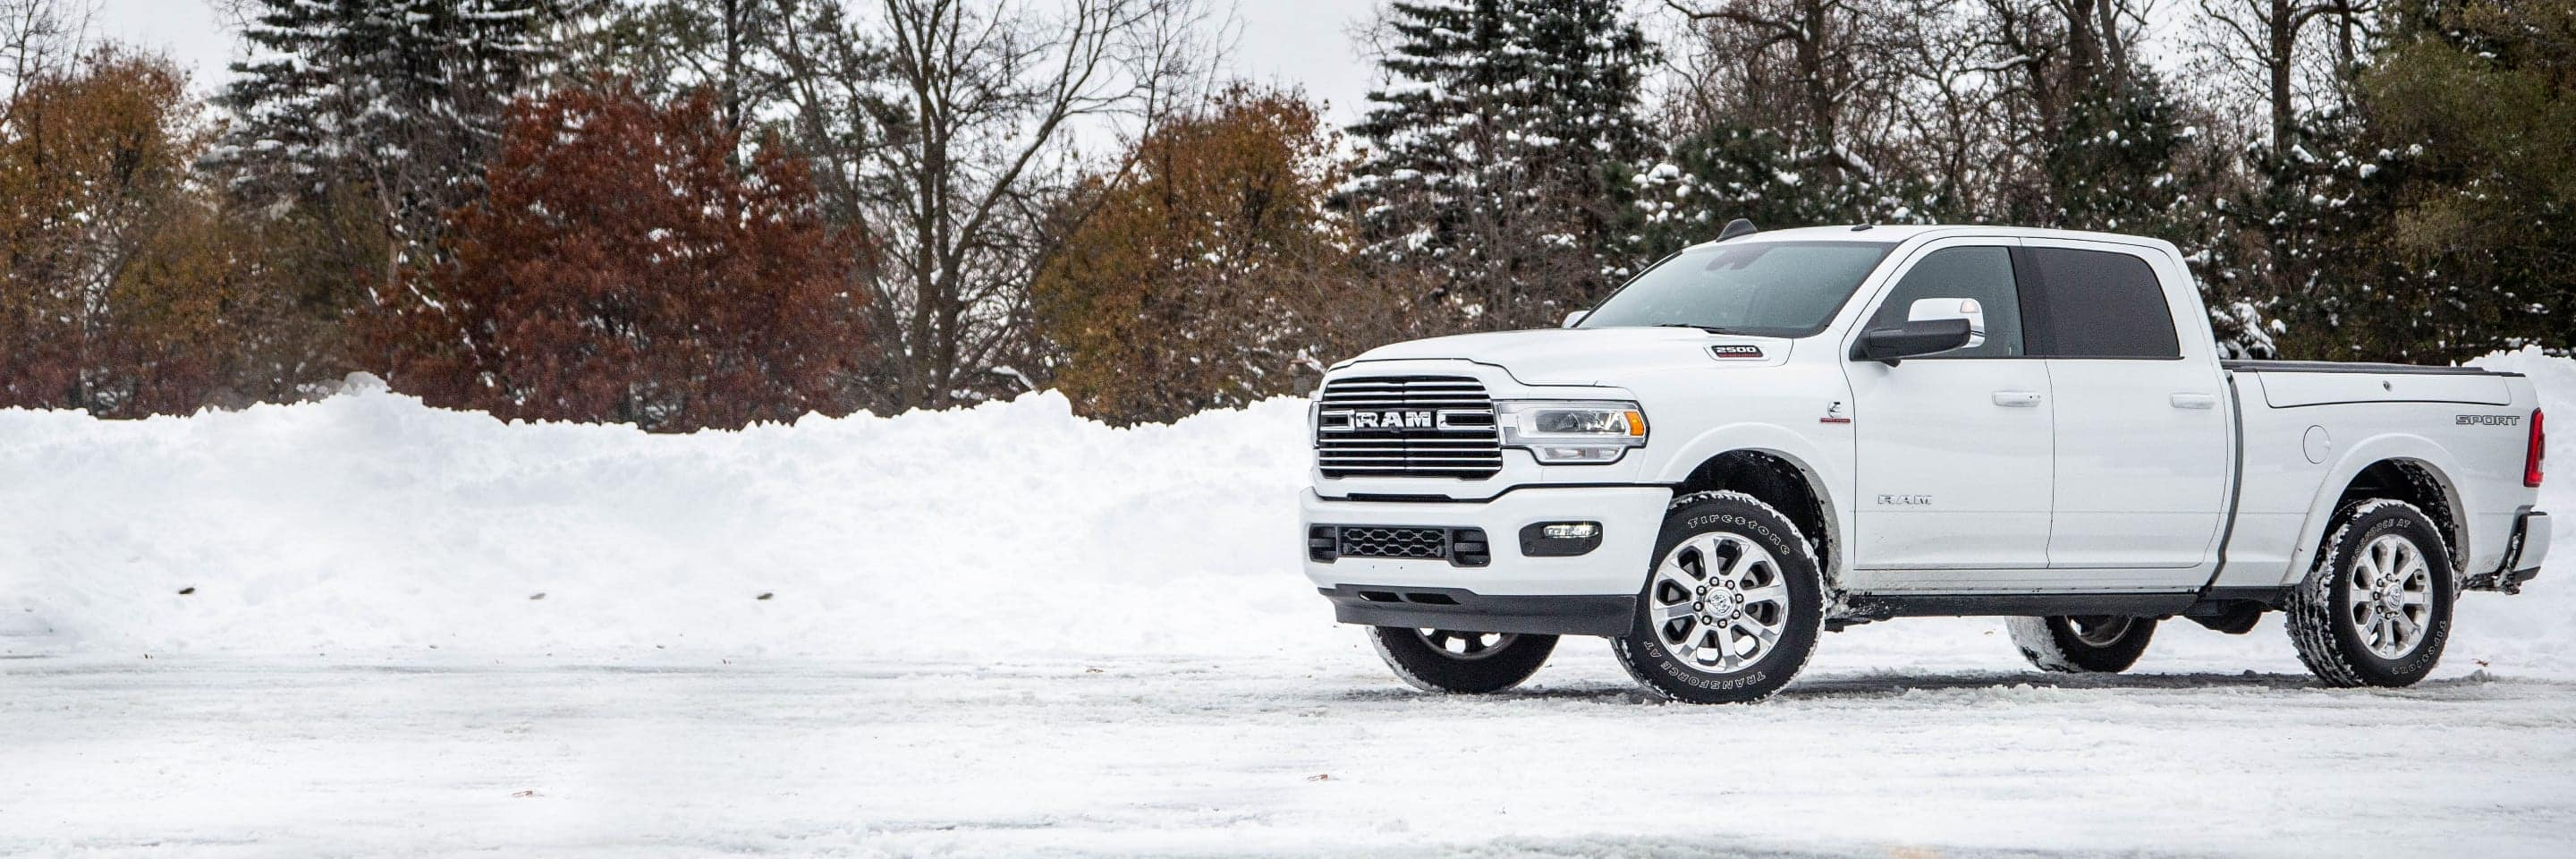 The 2020 Ram 2500 Laramie parked on a snow-covered road against a backdrop of snow-dusted trees.